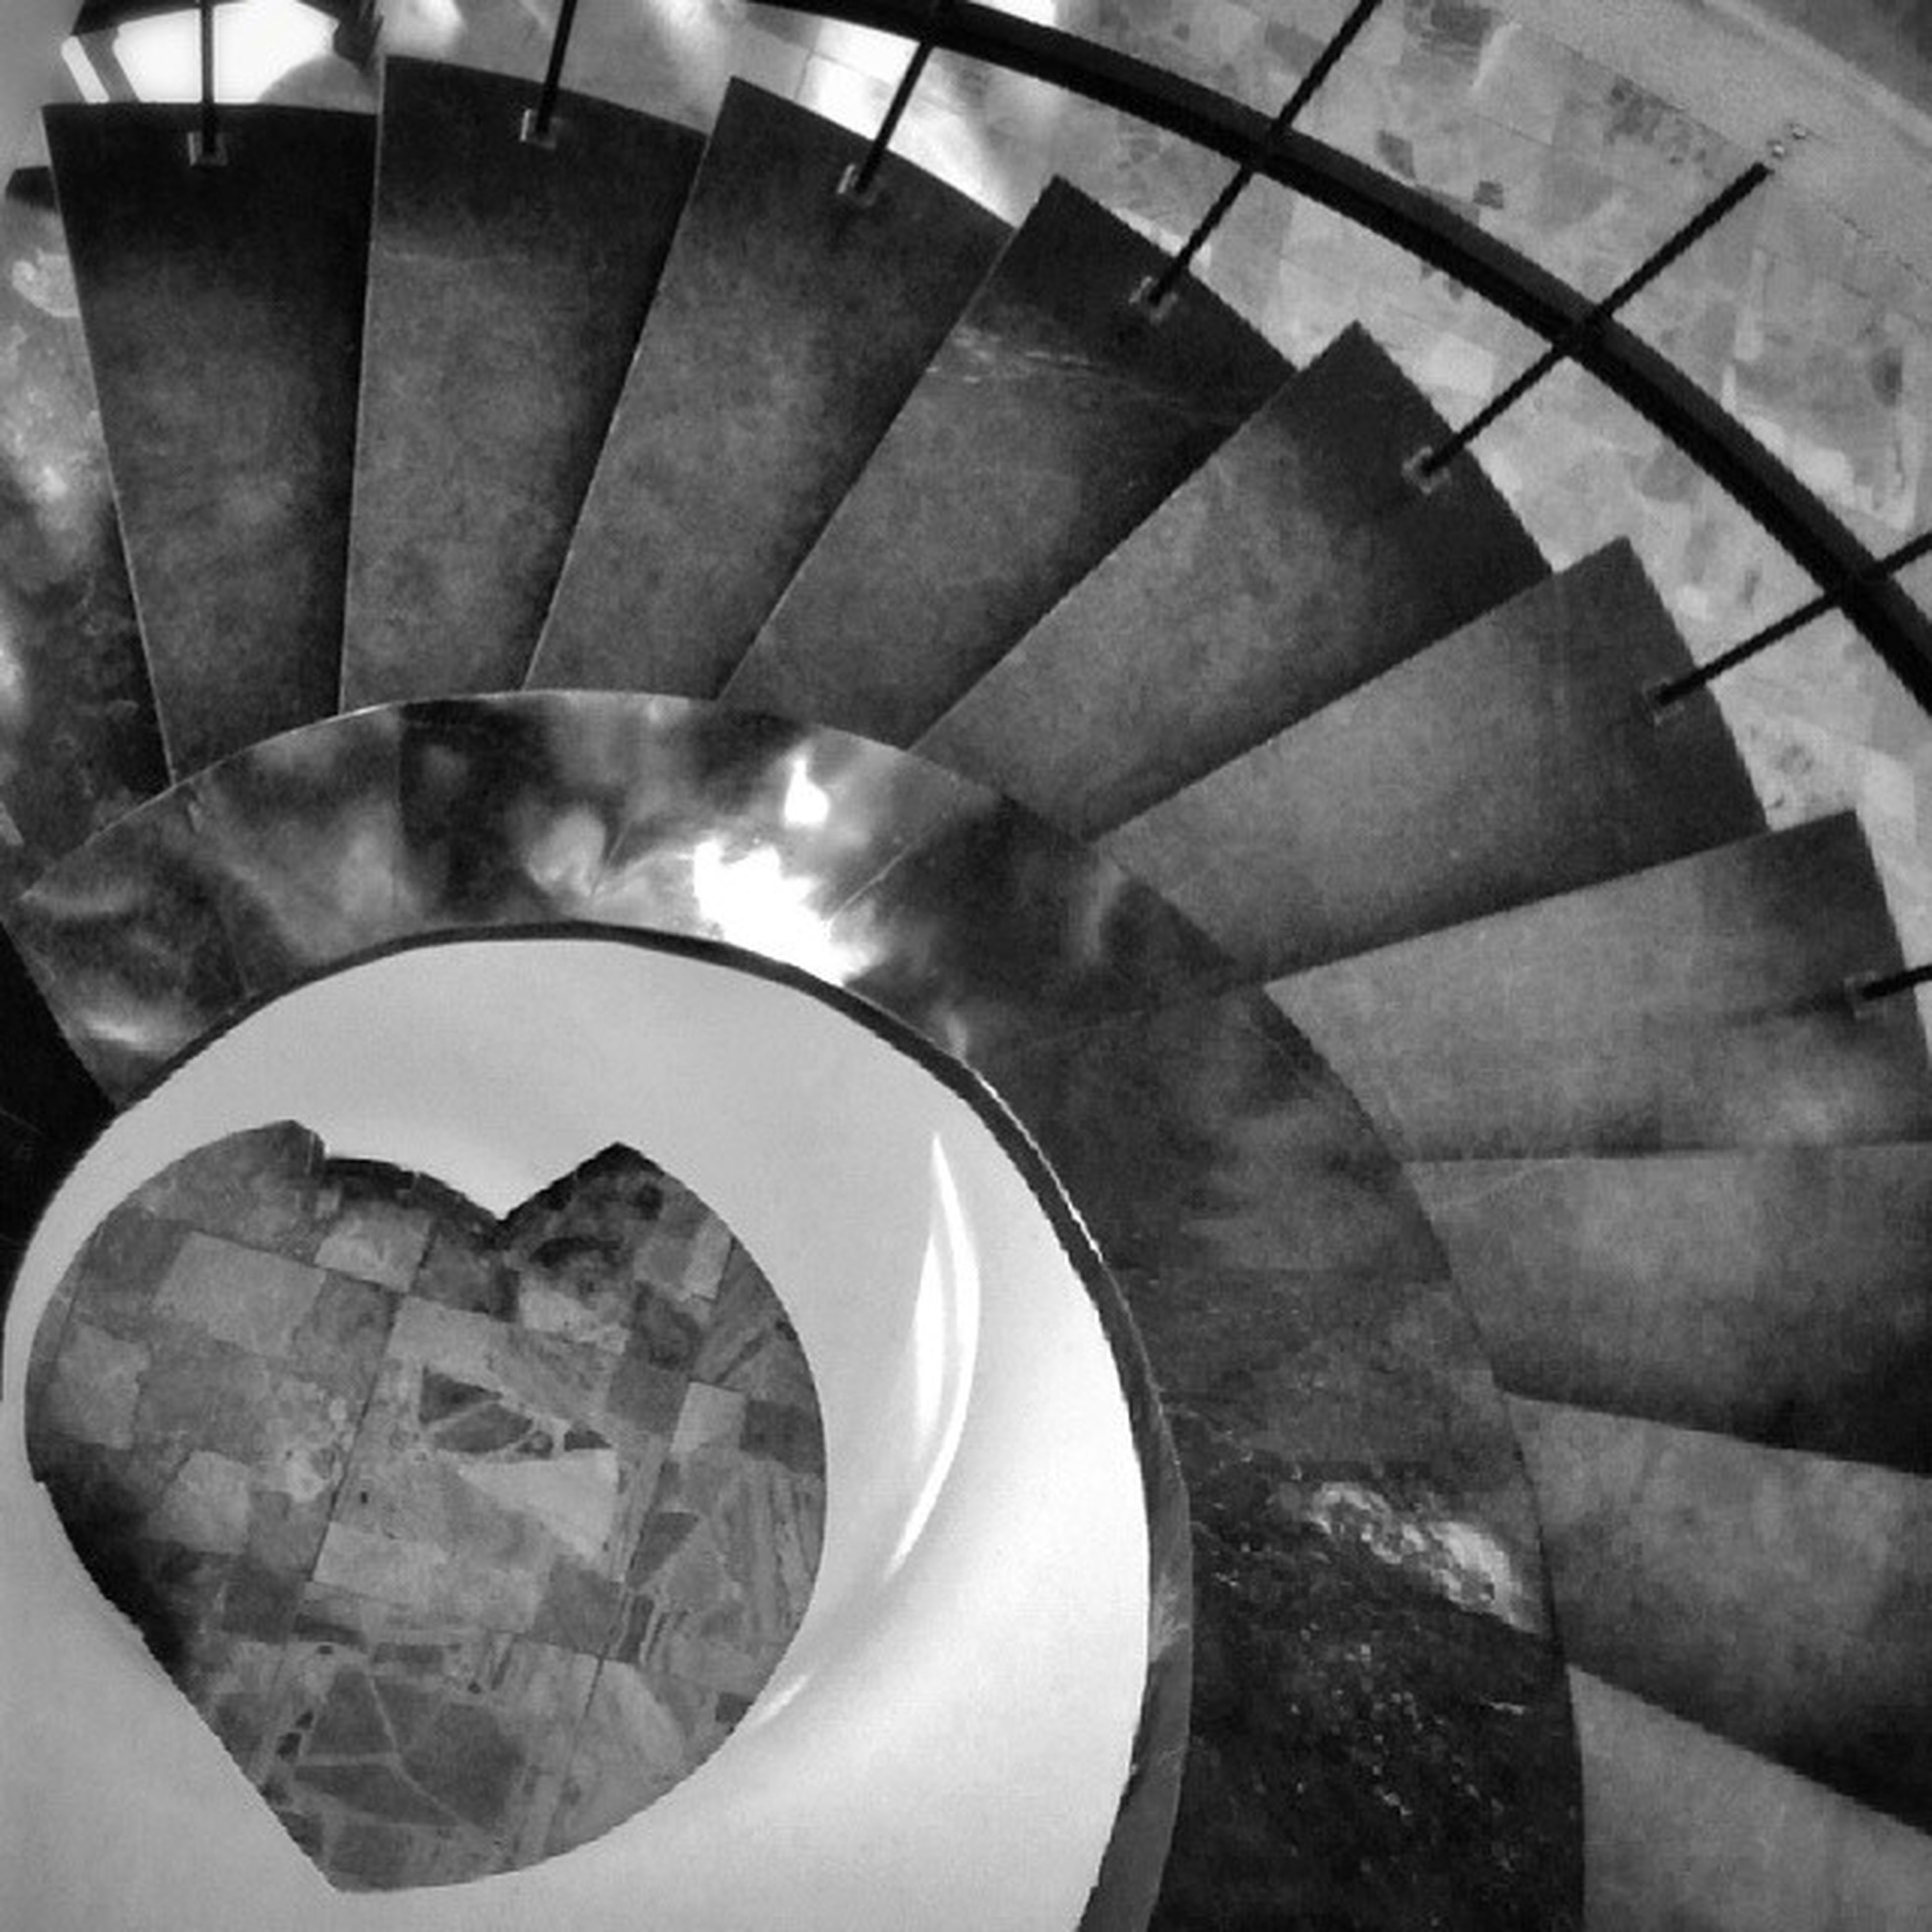 indoors, architecture, steps and staircases, built structure, steps, spiral staircase, staircase, ceiling, railing, spiral, circle, high angle view, geometric shape, pattern, low angle view, modern, building, no people, illuminated, arch